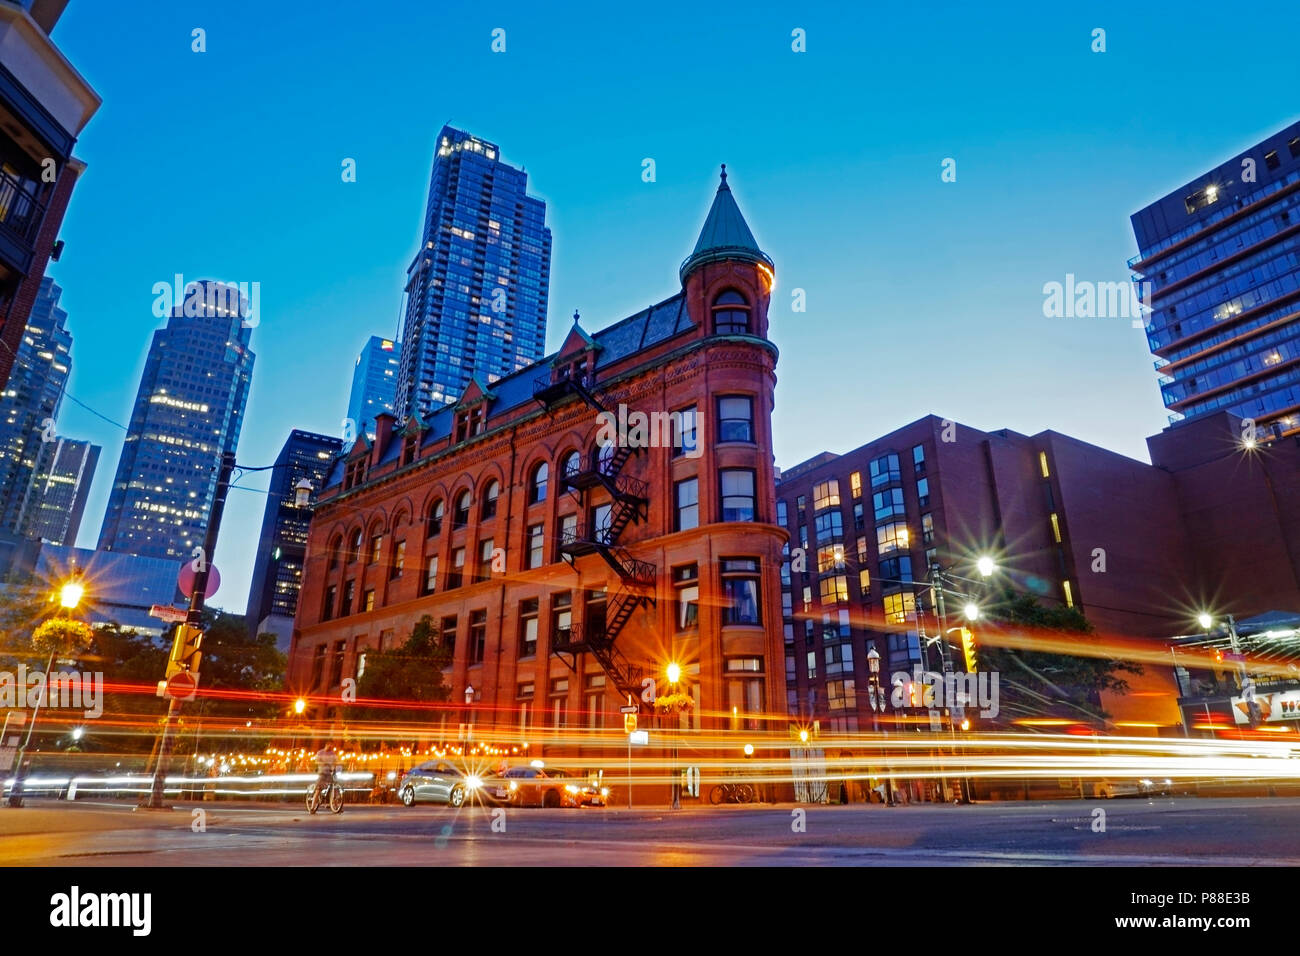 Toronto downtown landmark Flatiron Building, also known as Gooderham Building at the corner of Front Street, Church Street and Wellington Street - Stock Image